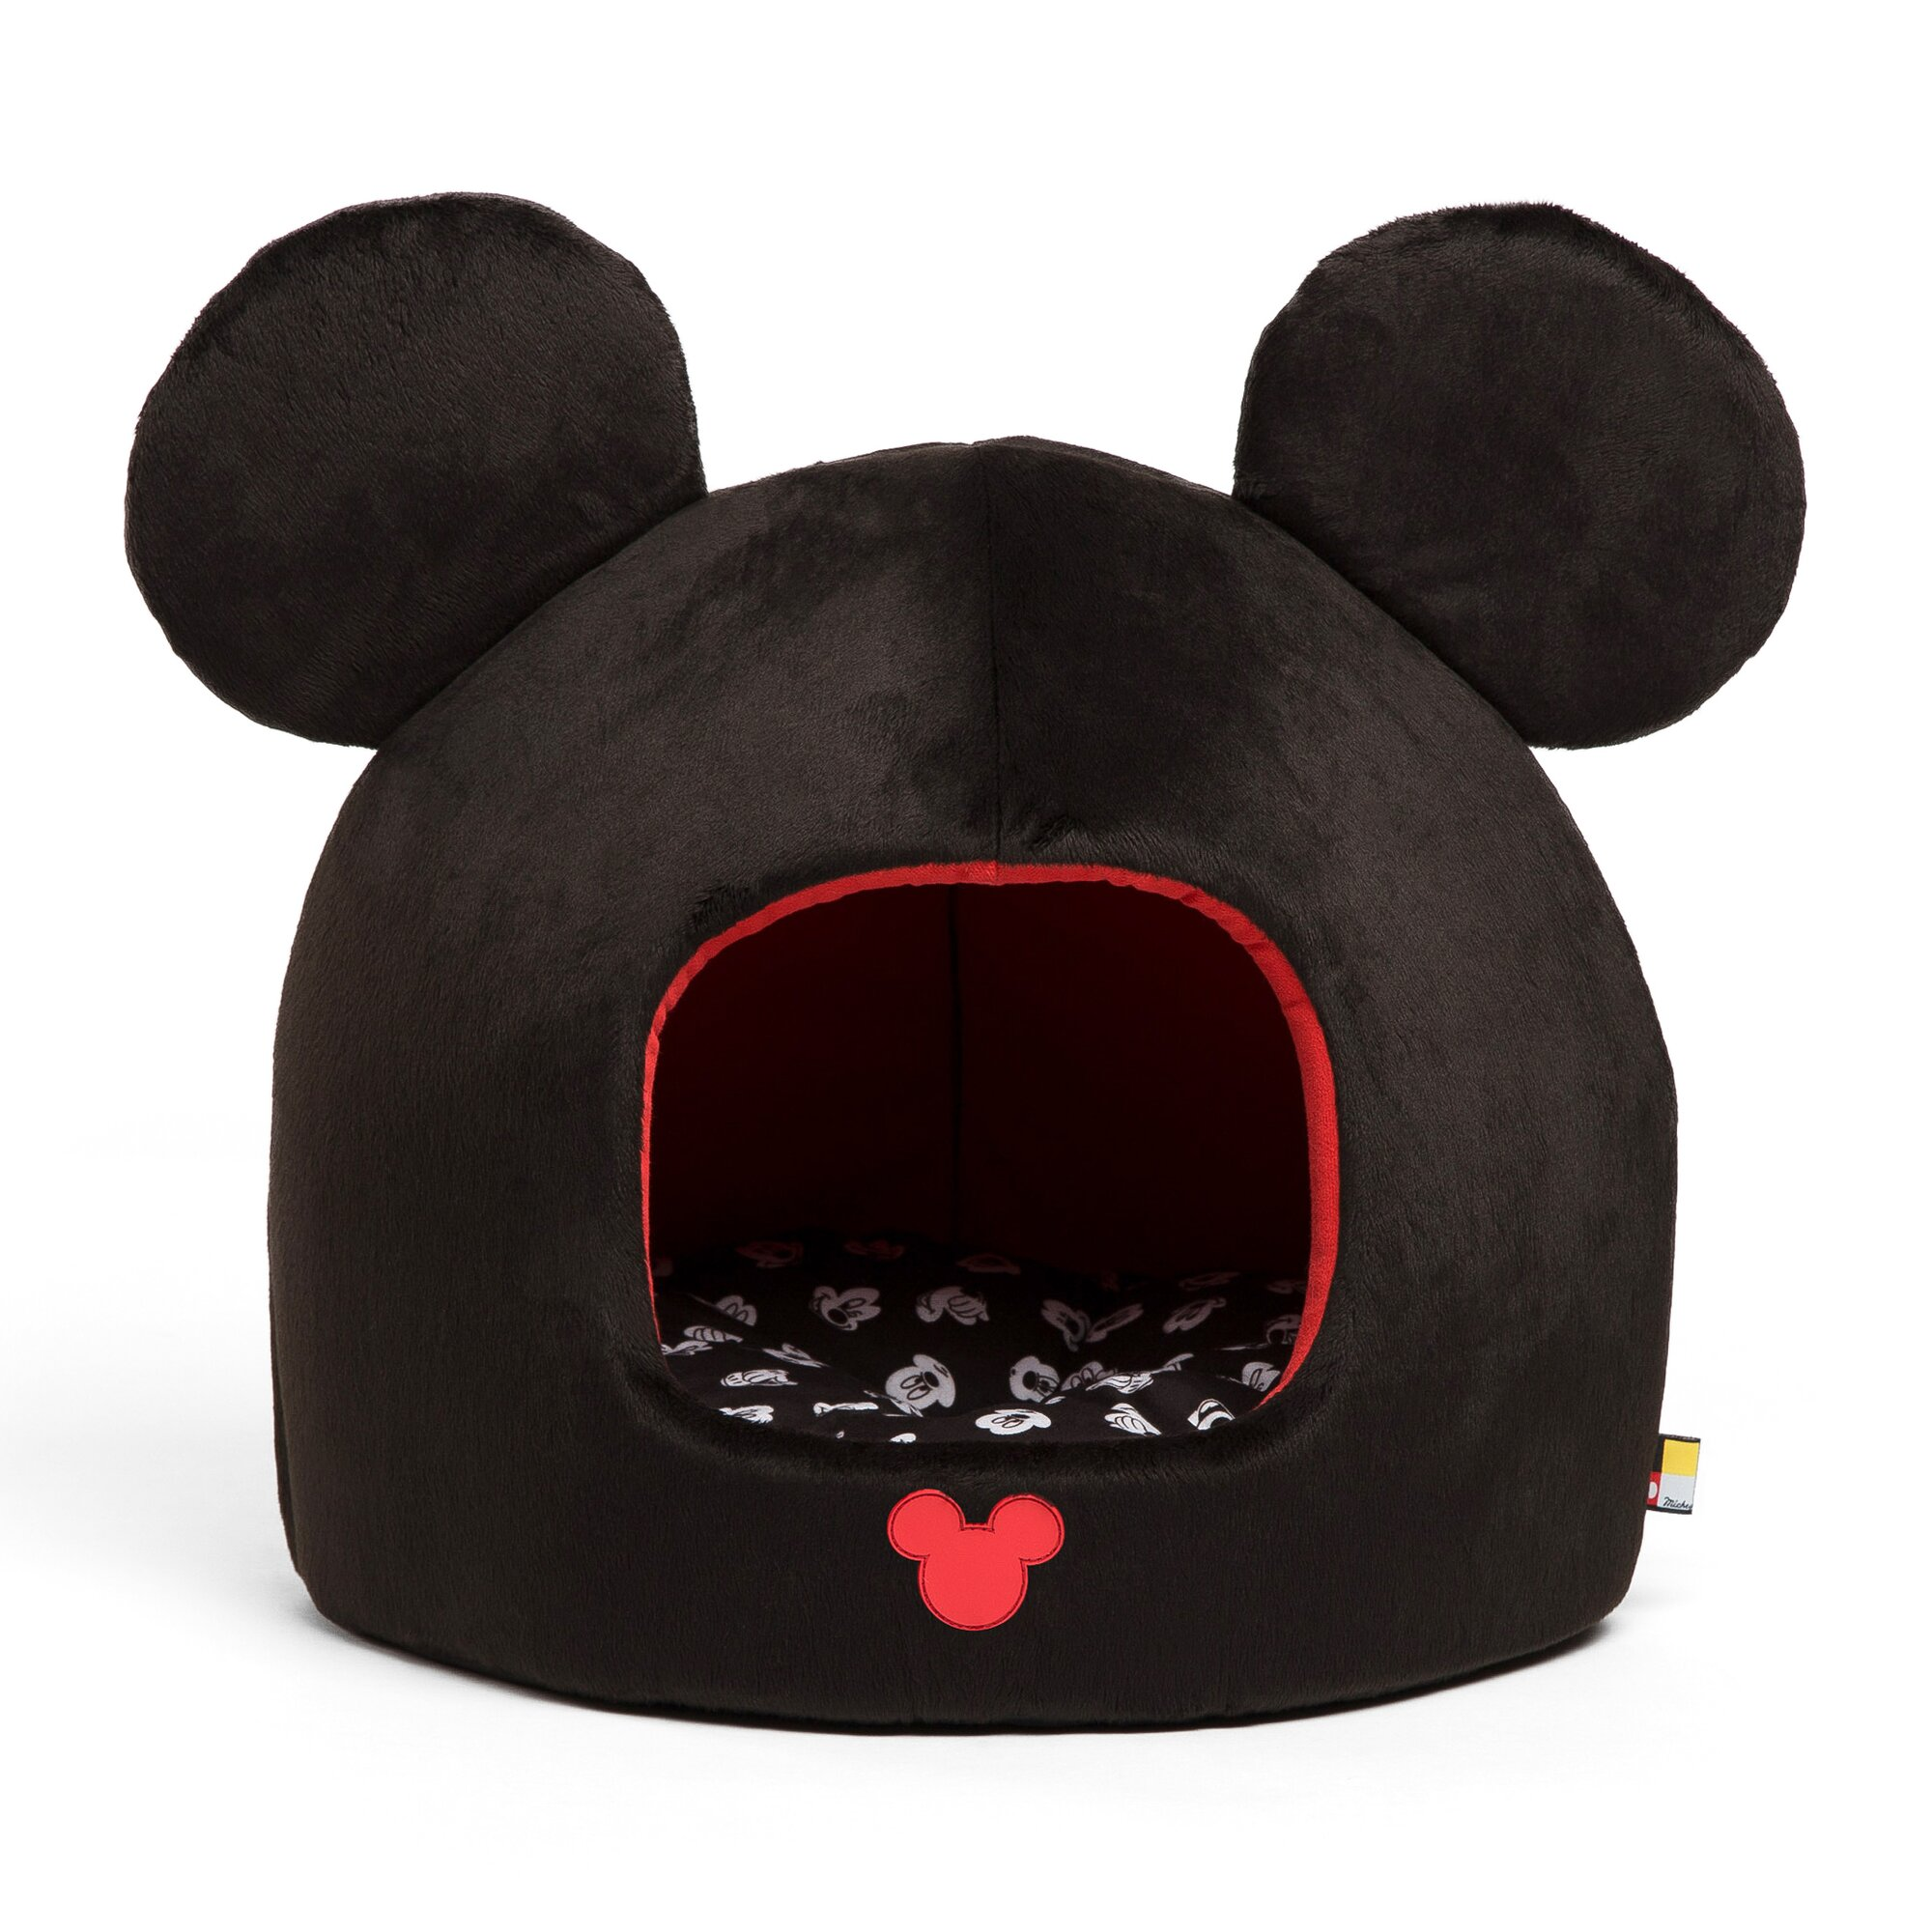 Disney Mickey Mouse Dome Dog Bed  Reviews Wayfair - Mickey mouse bathroom accessories